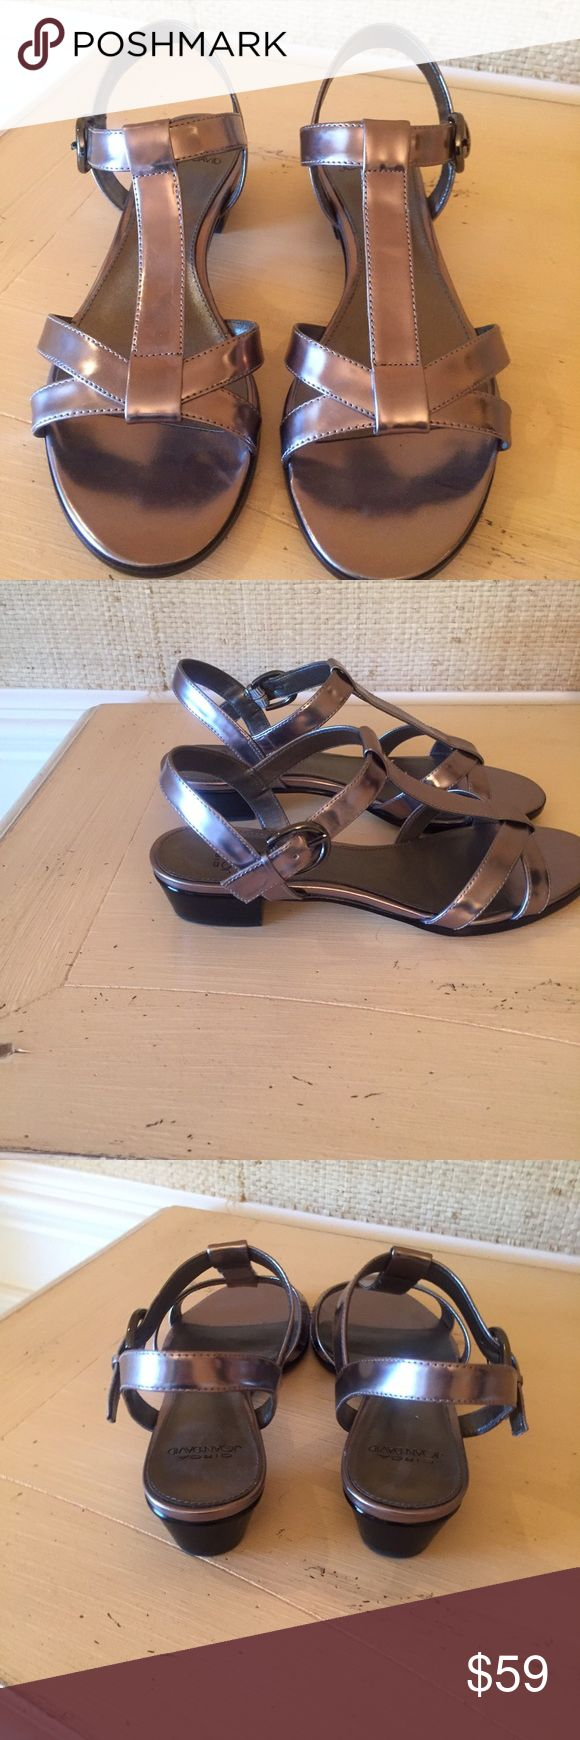 Joan & David NWT leather silver sandal. Size 6 Pretty never worn sandal. Silver with a small heel. Joan & David Shoes Sandals